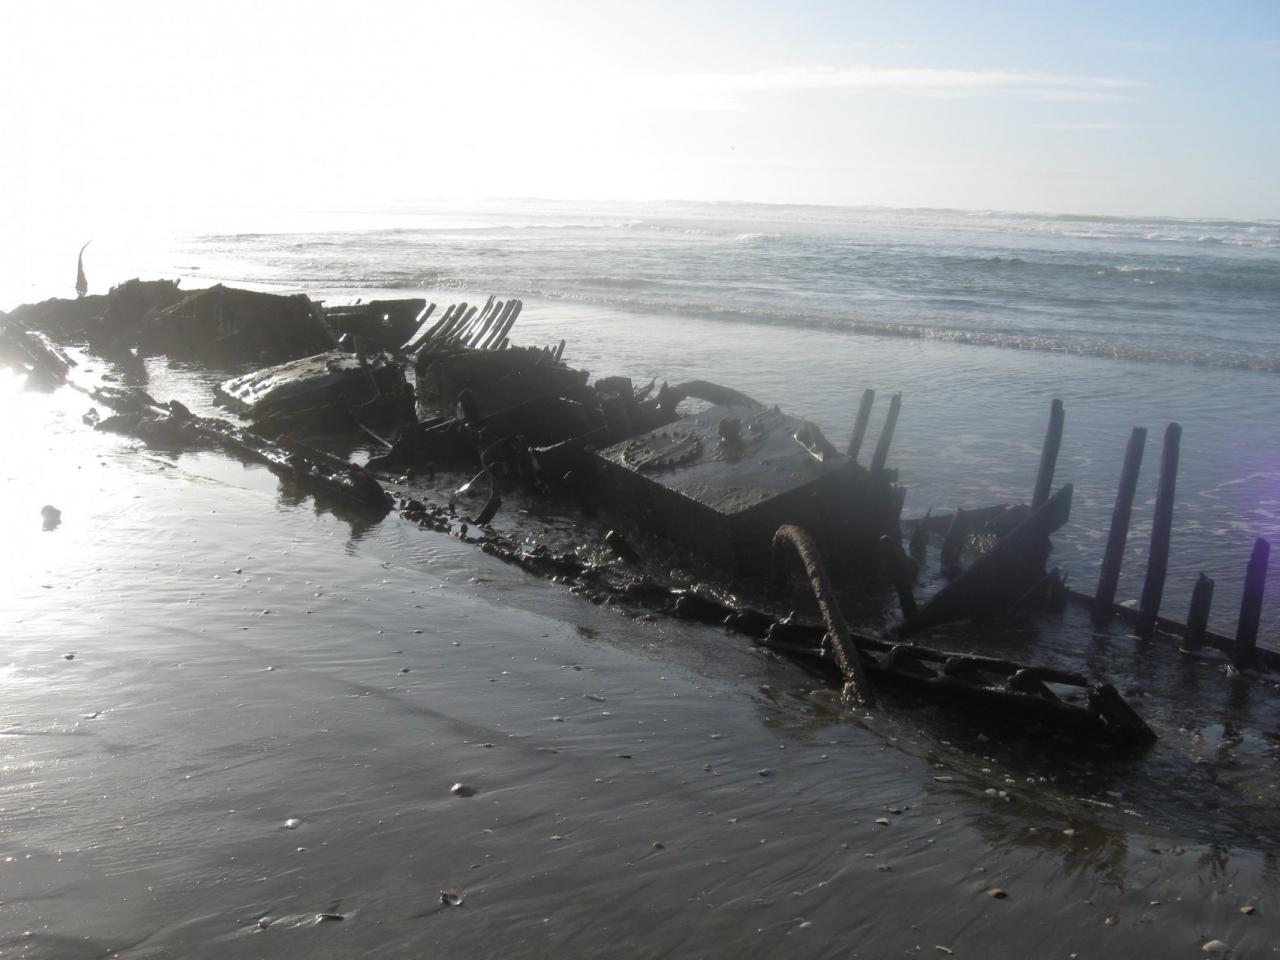 Wreck of Helen E a WII subchaser grounded and burned in 1951